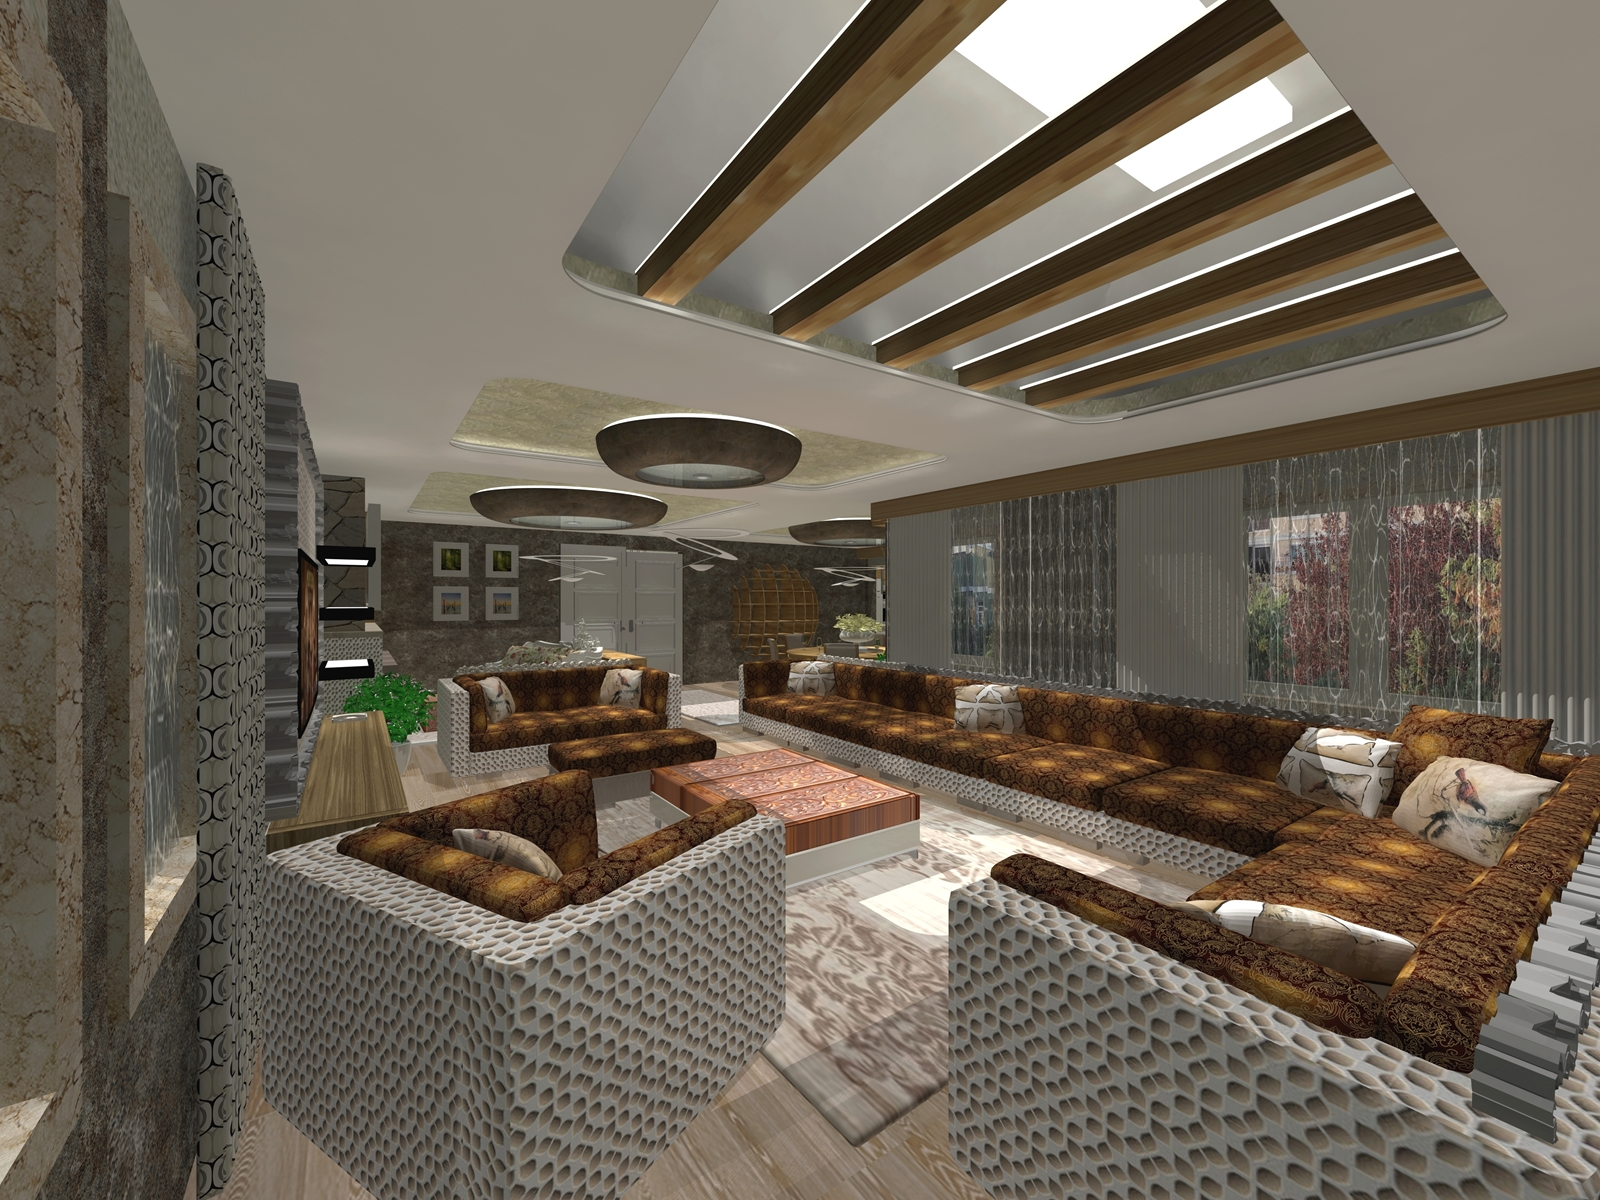 SALON 2 YENI RENDER (Copy)